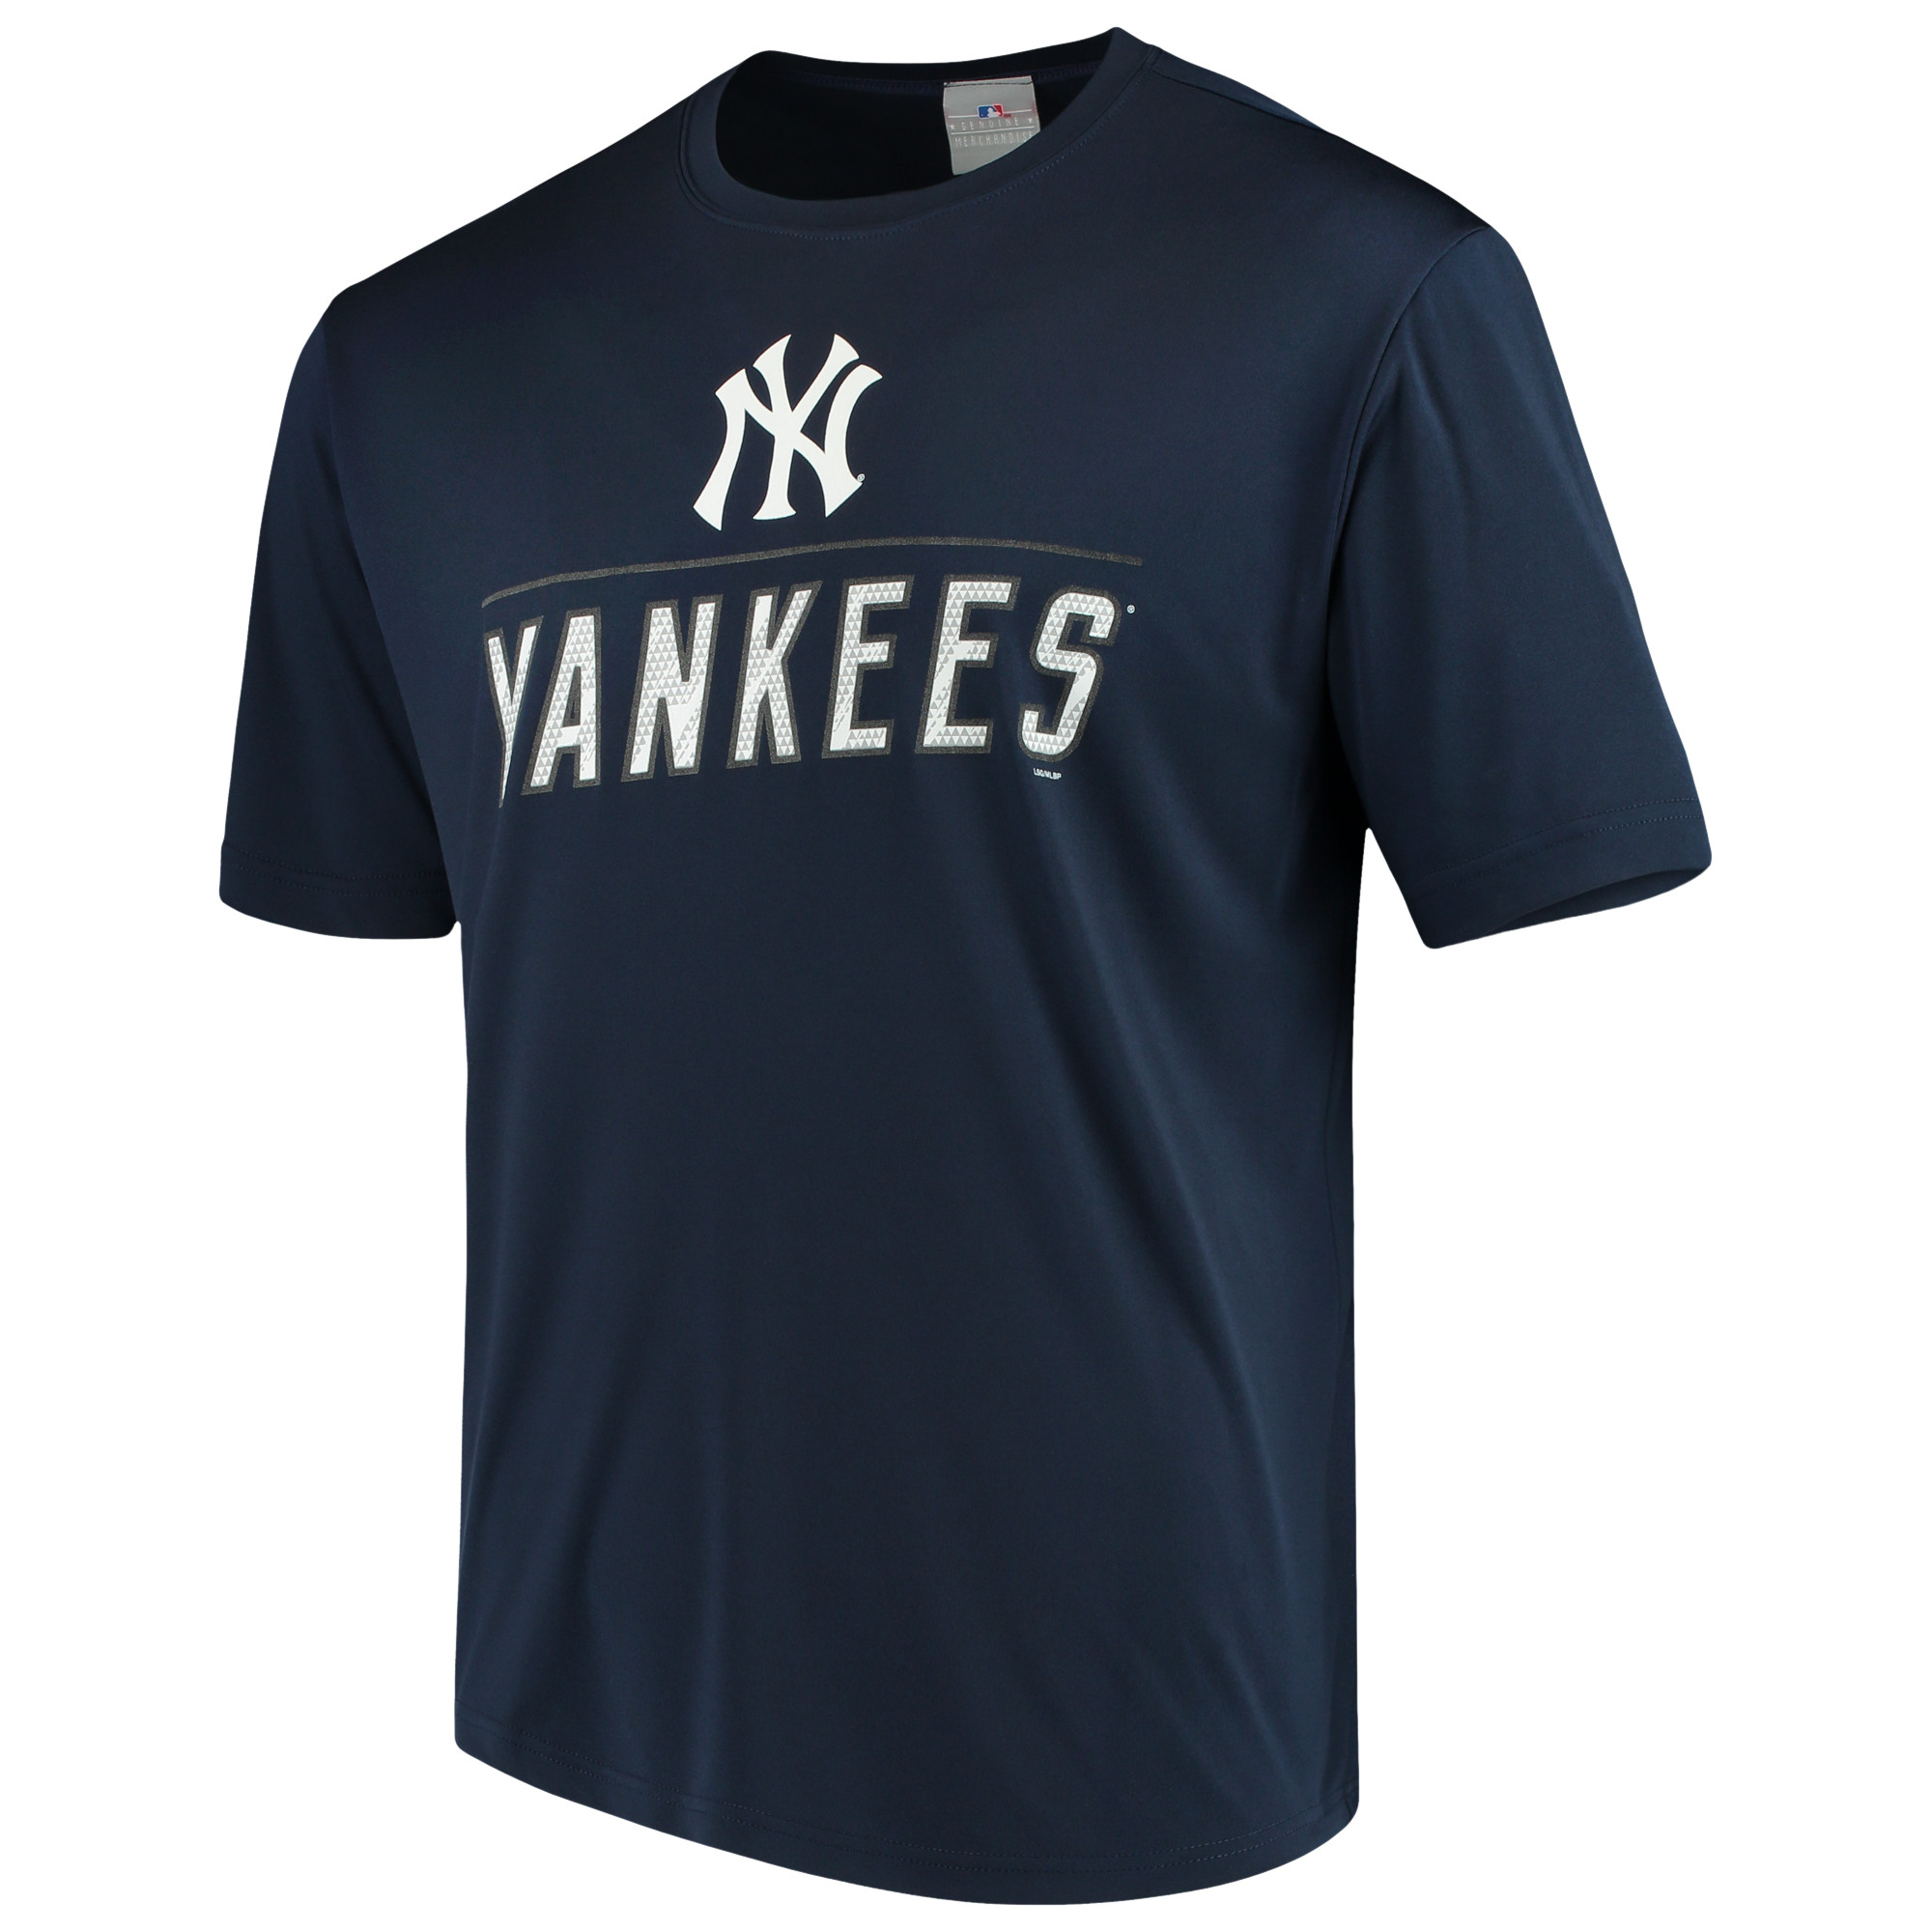 Men's Majestic Navy New York Yankees Big Athletic TX3 Cool Fabric T-Shirt